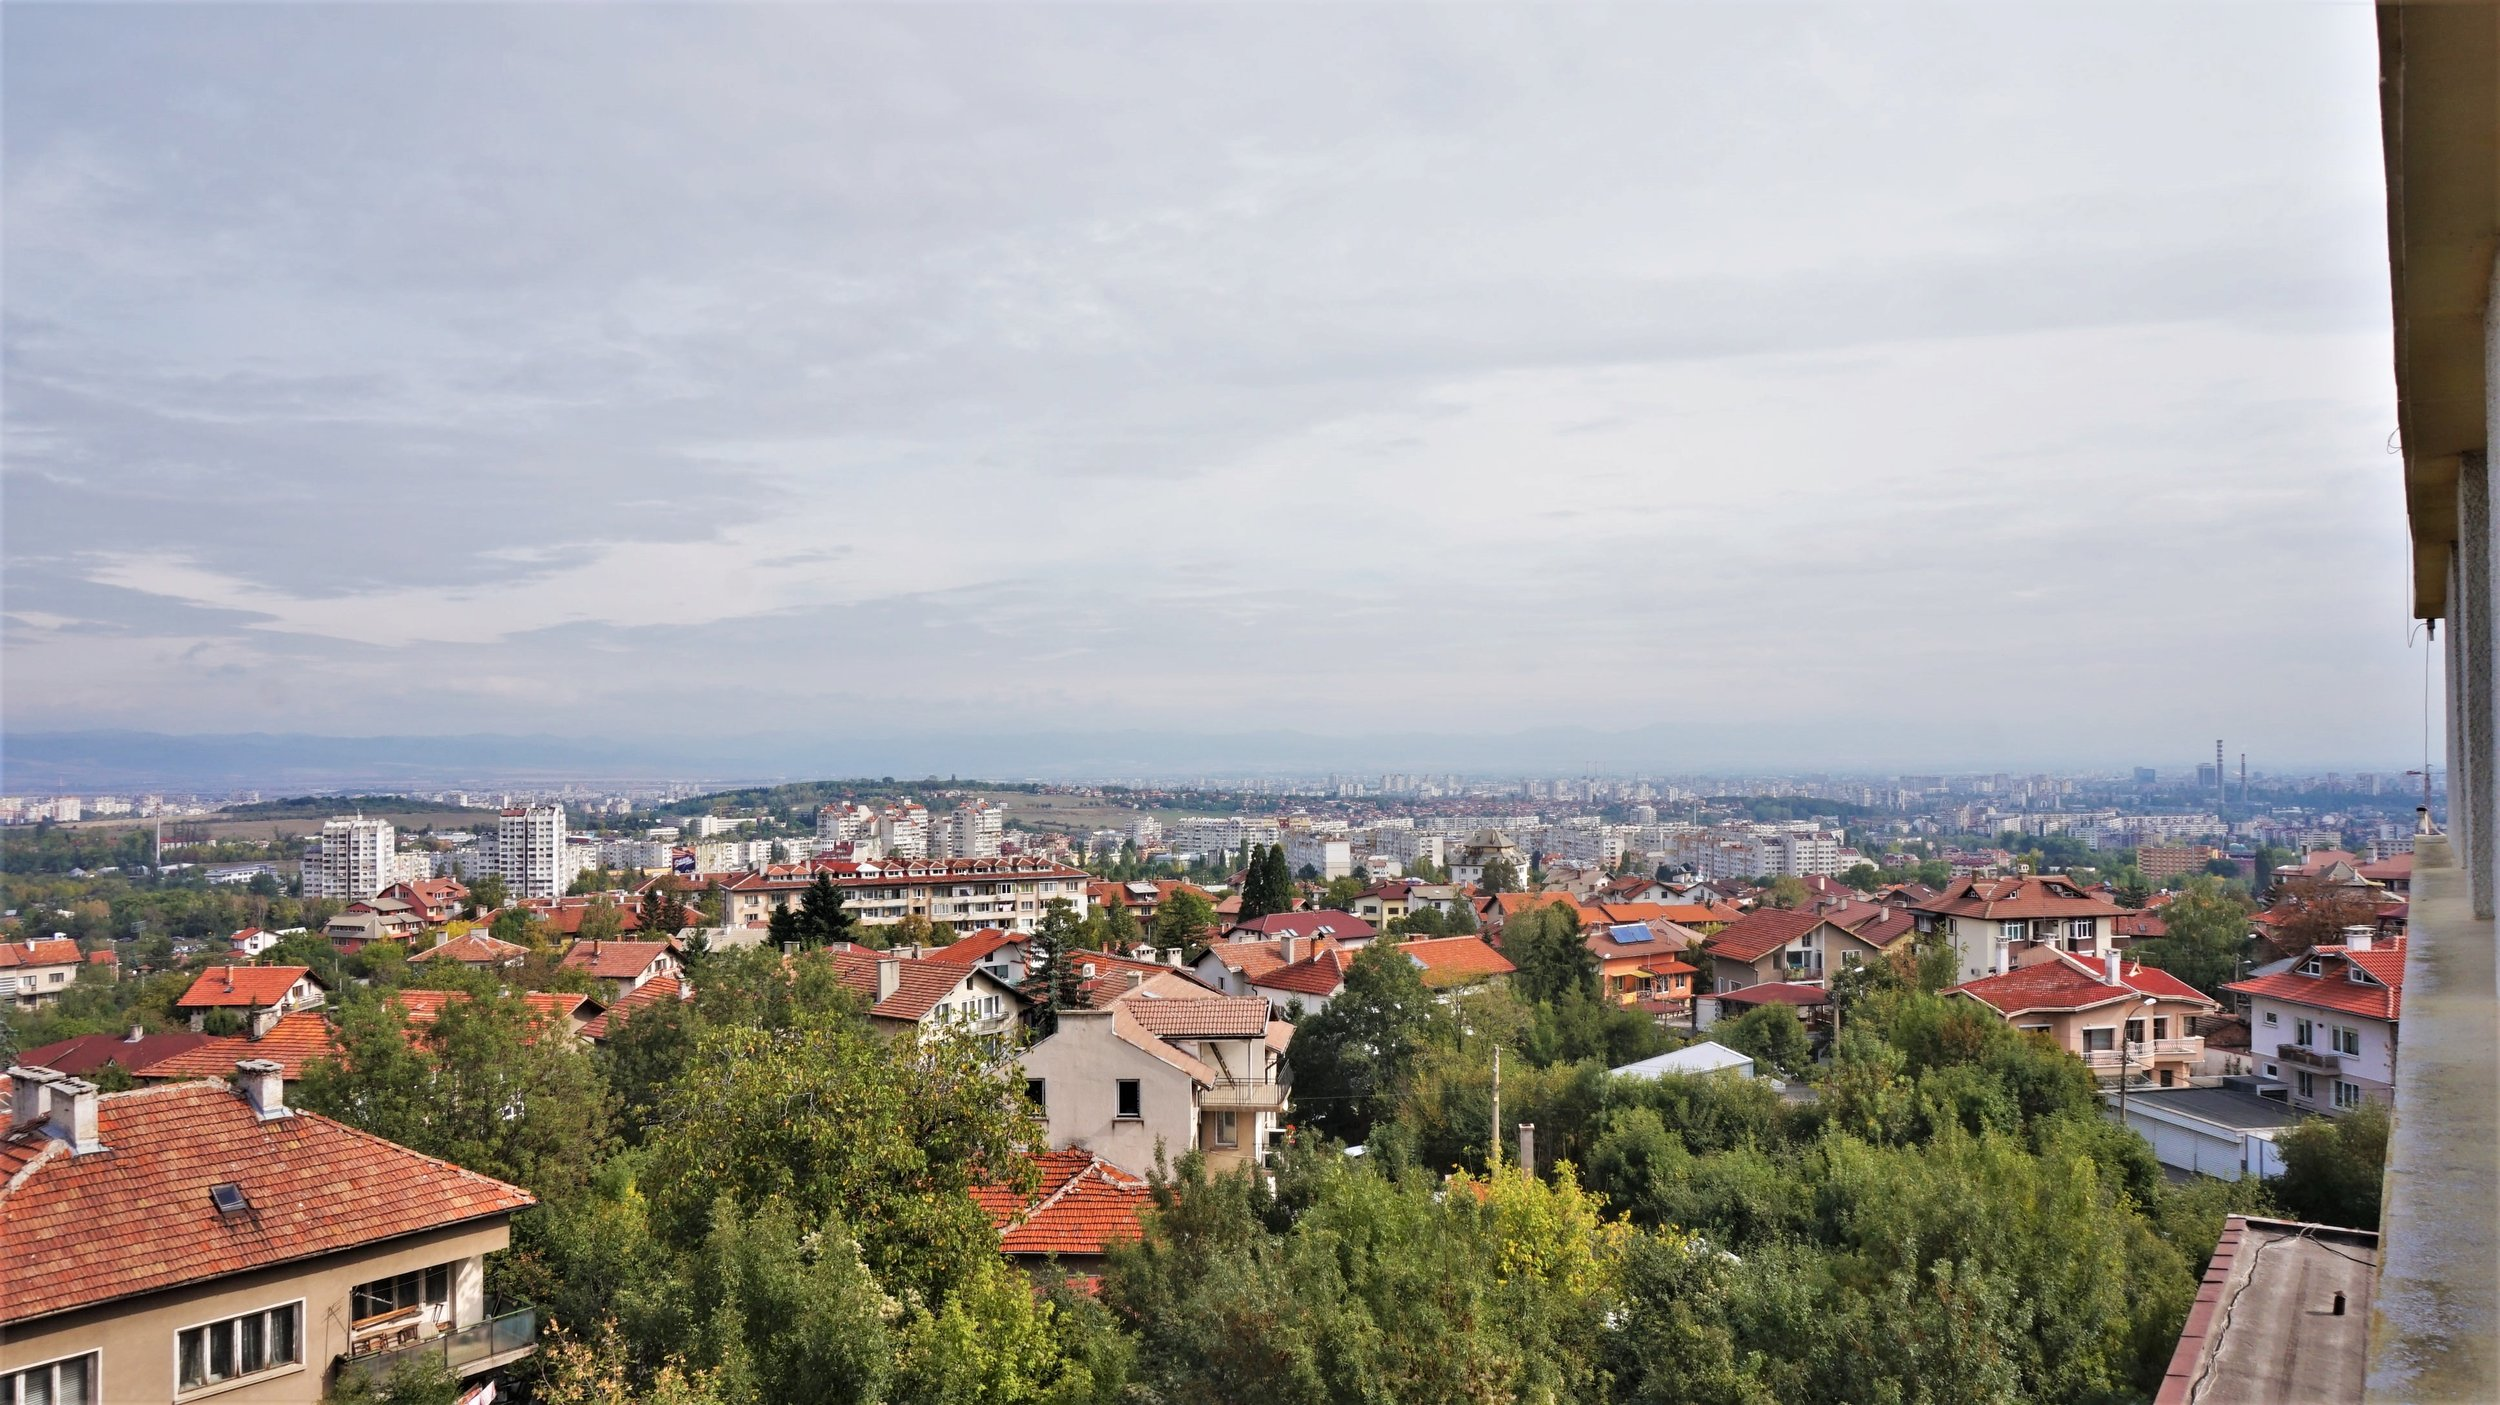 The view from Hotel Gorna Banya